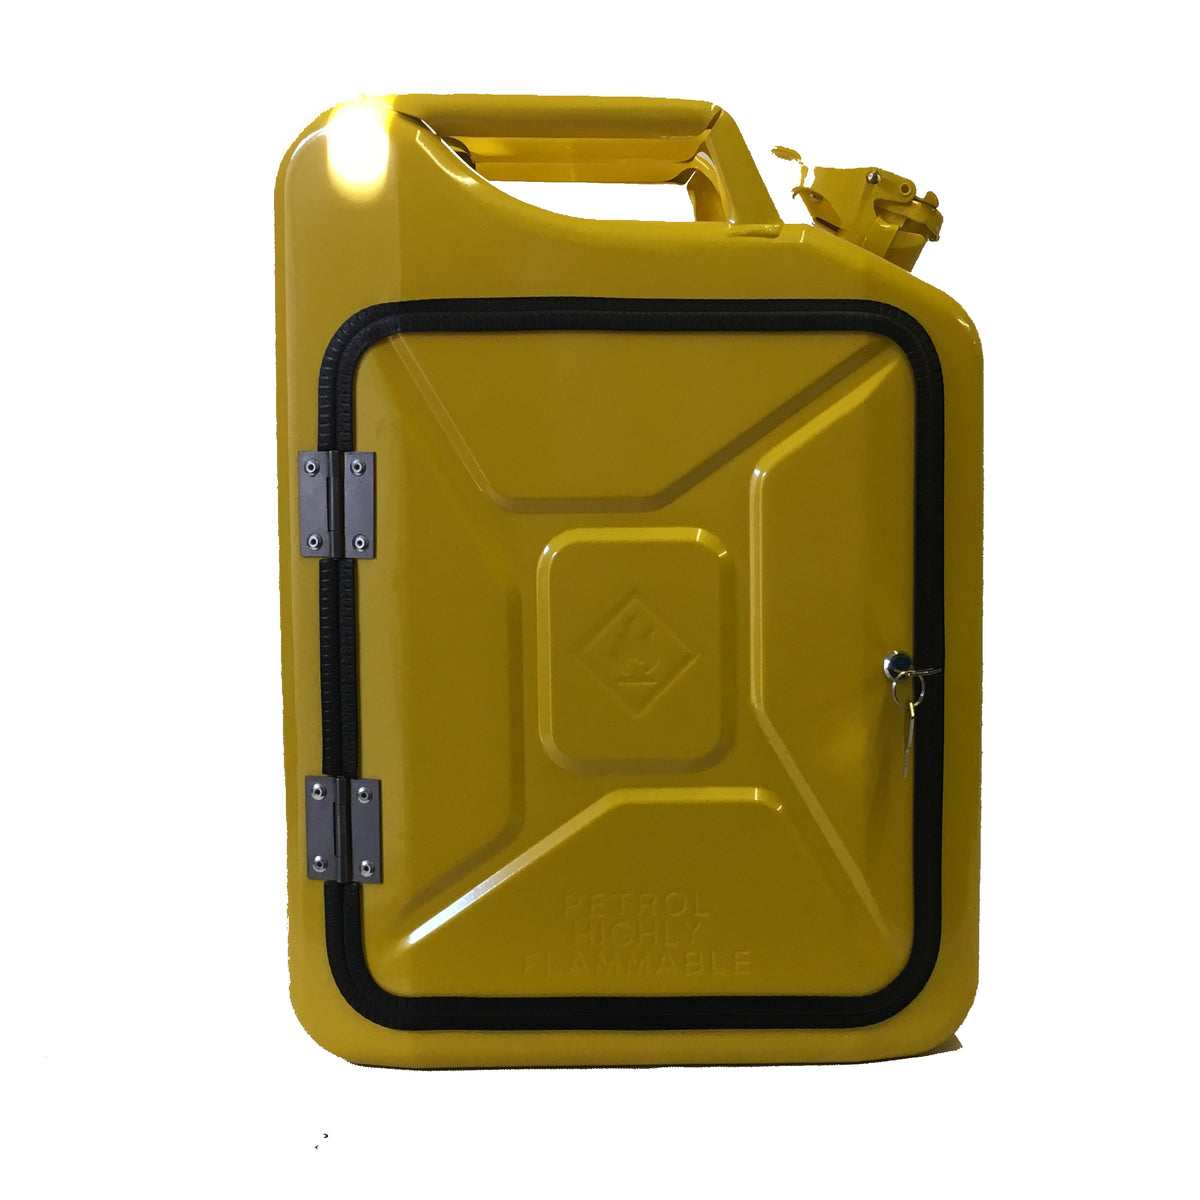 The new jerry can mini bar with precision cut foam interior